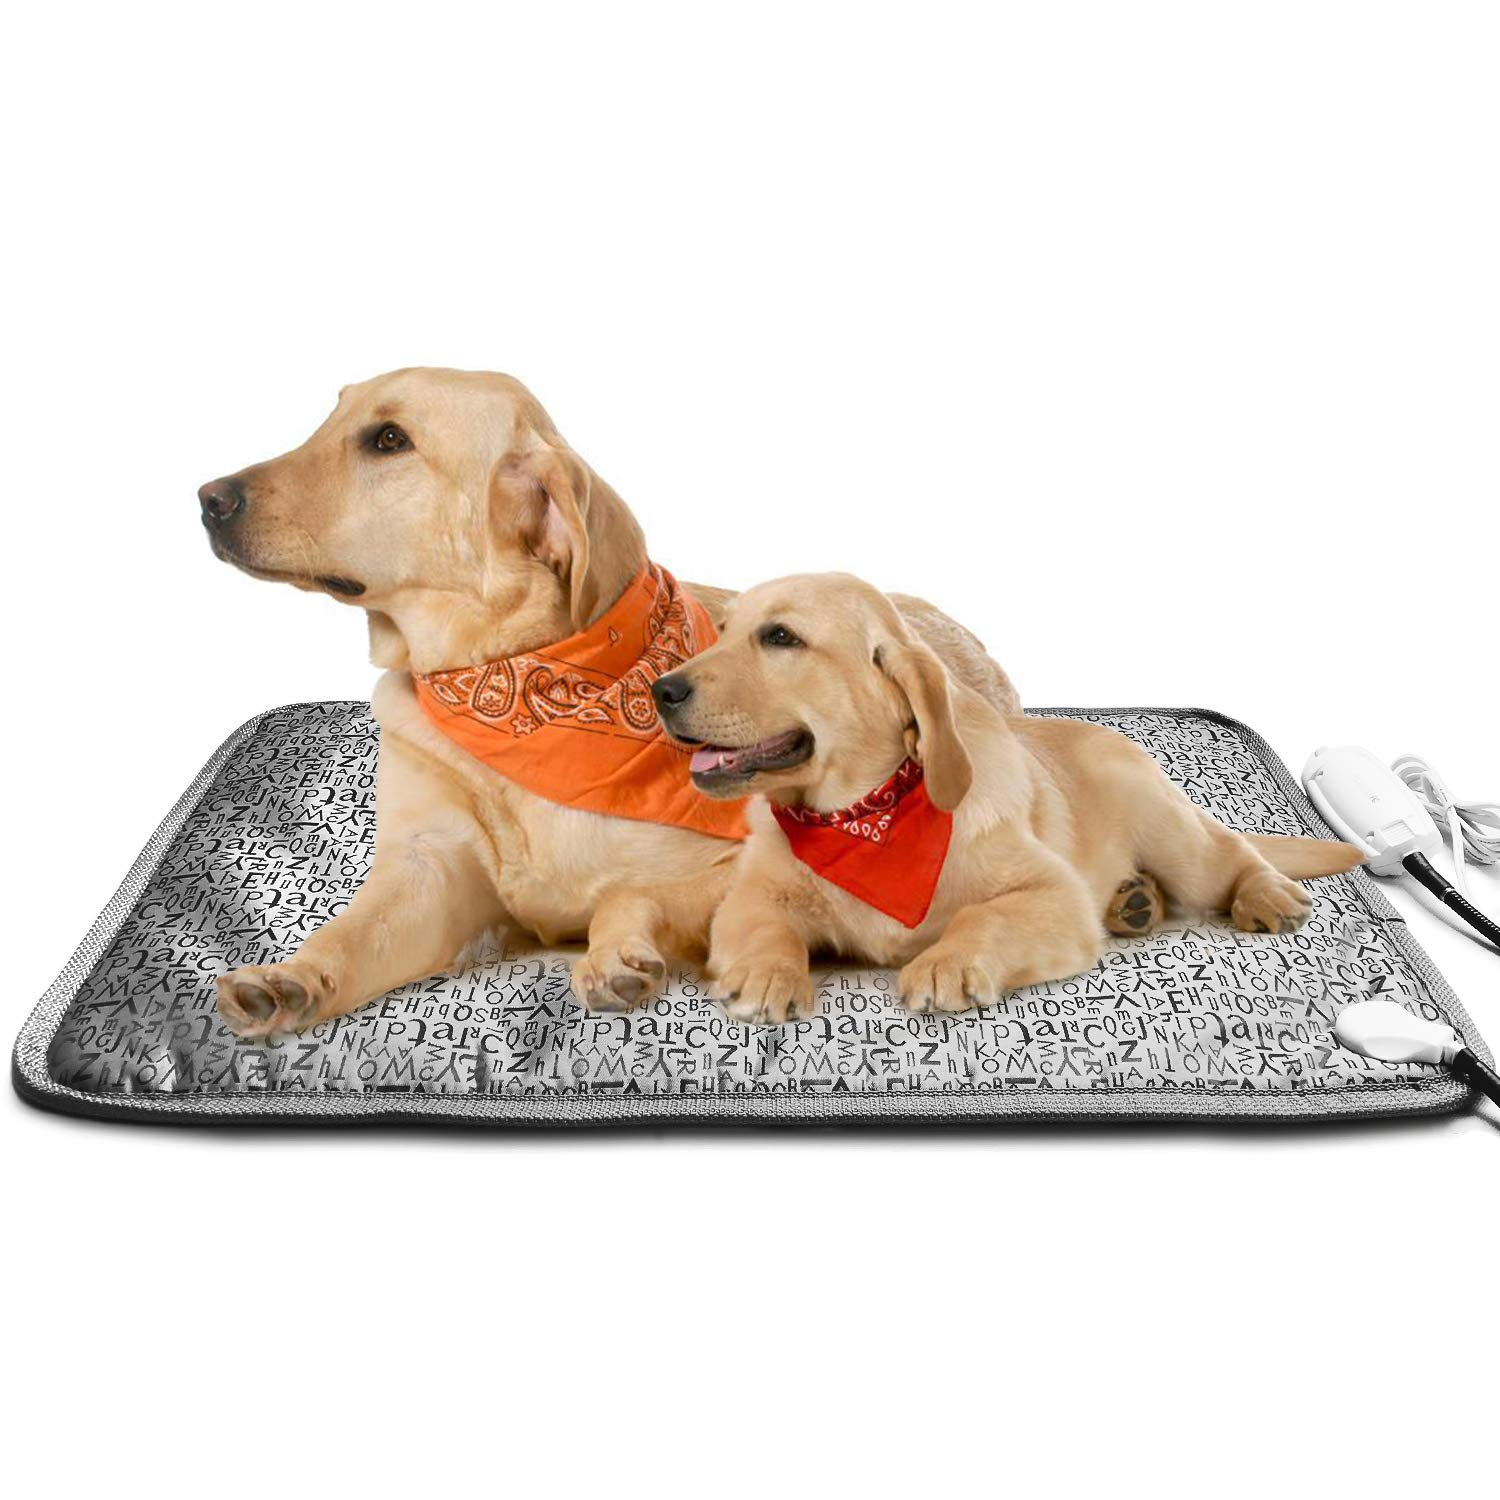 Yichang Pet Heating Pad Electric Warming Mat Pets Wammer Flexible Safety Waterproof Chew Resistant Winter for Adult Dogs Cats Indoor Large 110V 17.7''x27.9''